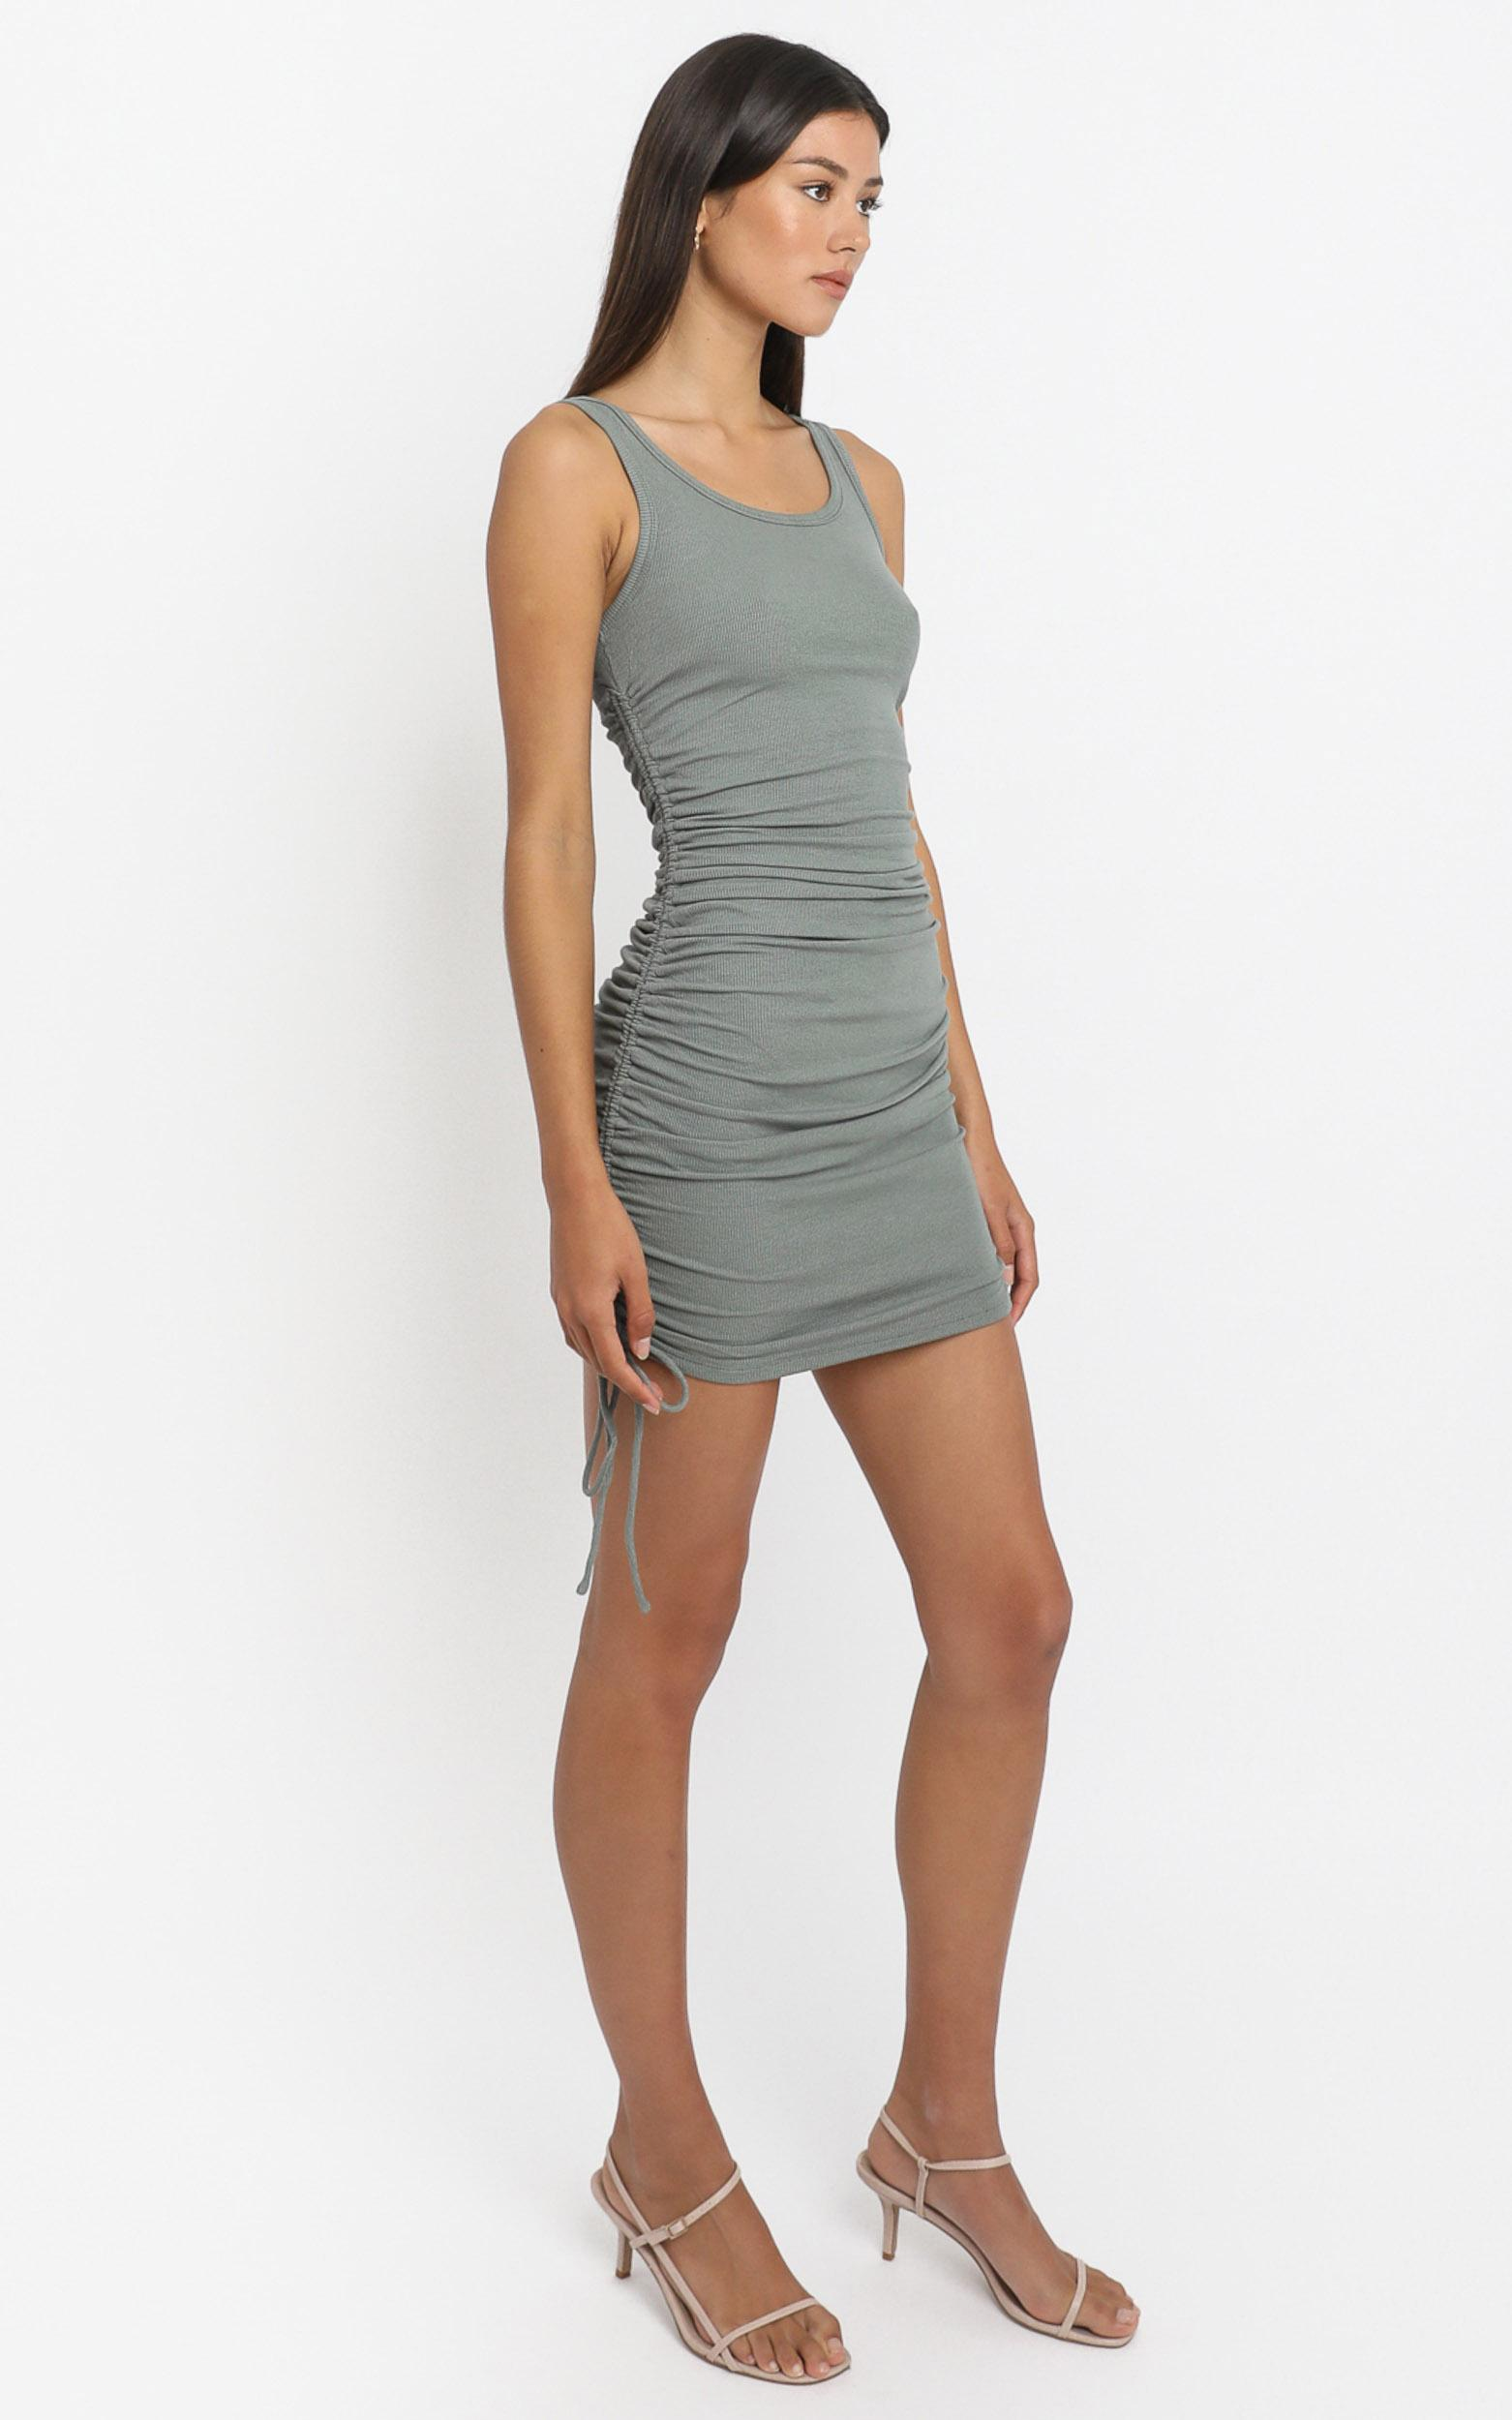 Kailey Dress in Khaki - 6 (XS), Khaki, hi-res image number null